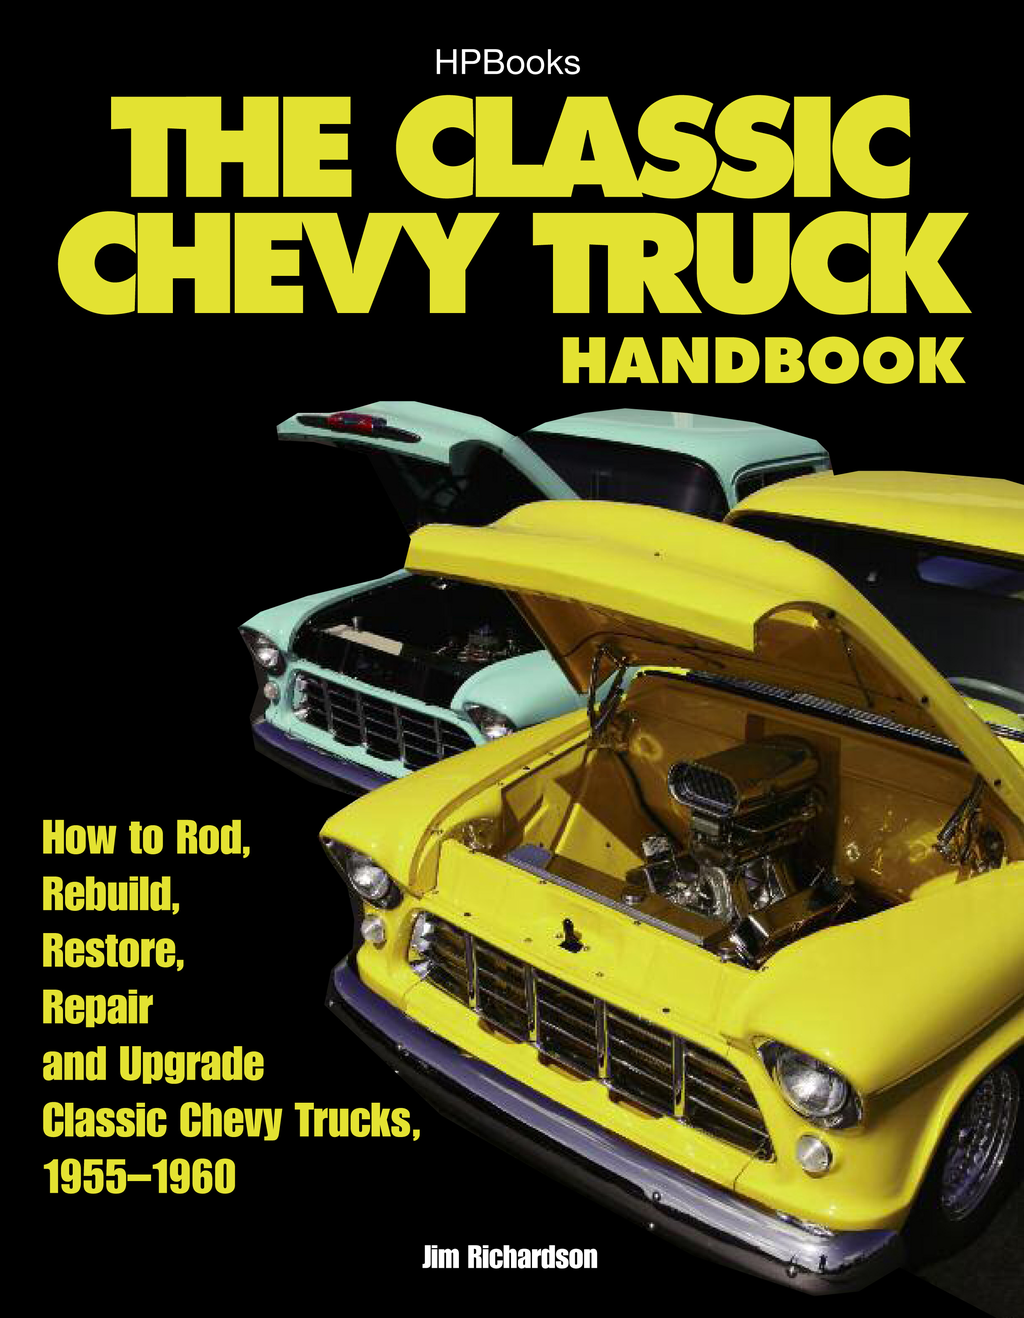 The Classic Chevy Truck Handbook HP 1534 By: Jim Richardson